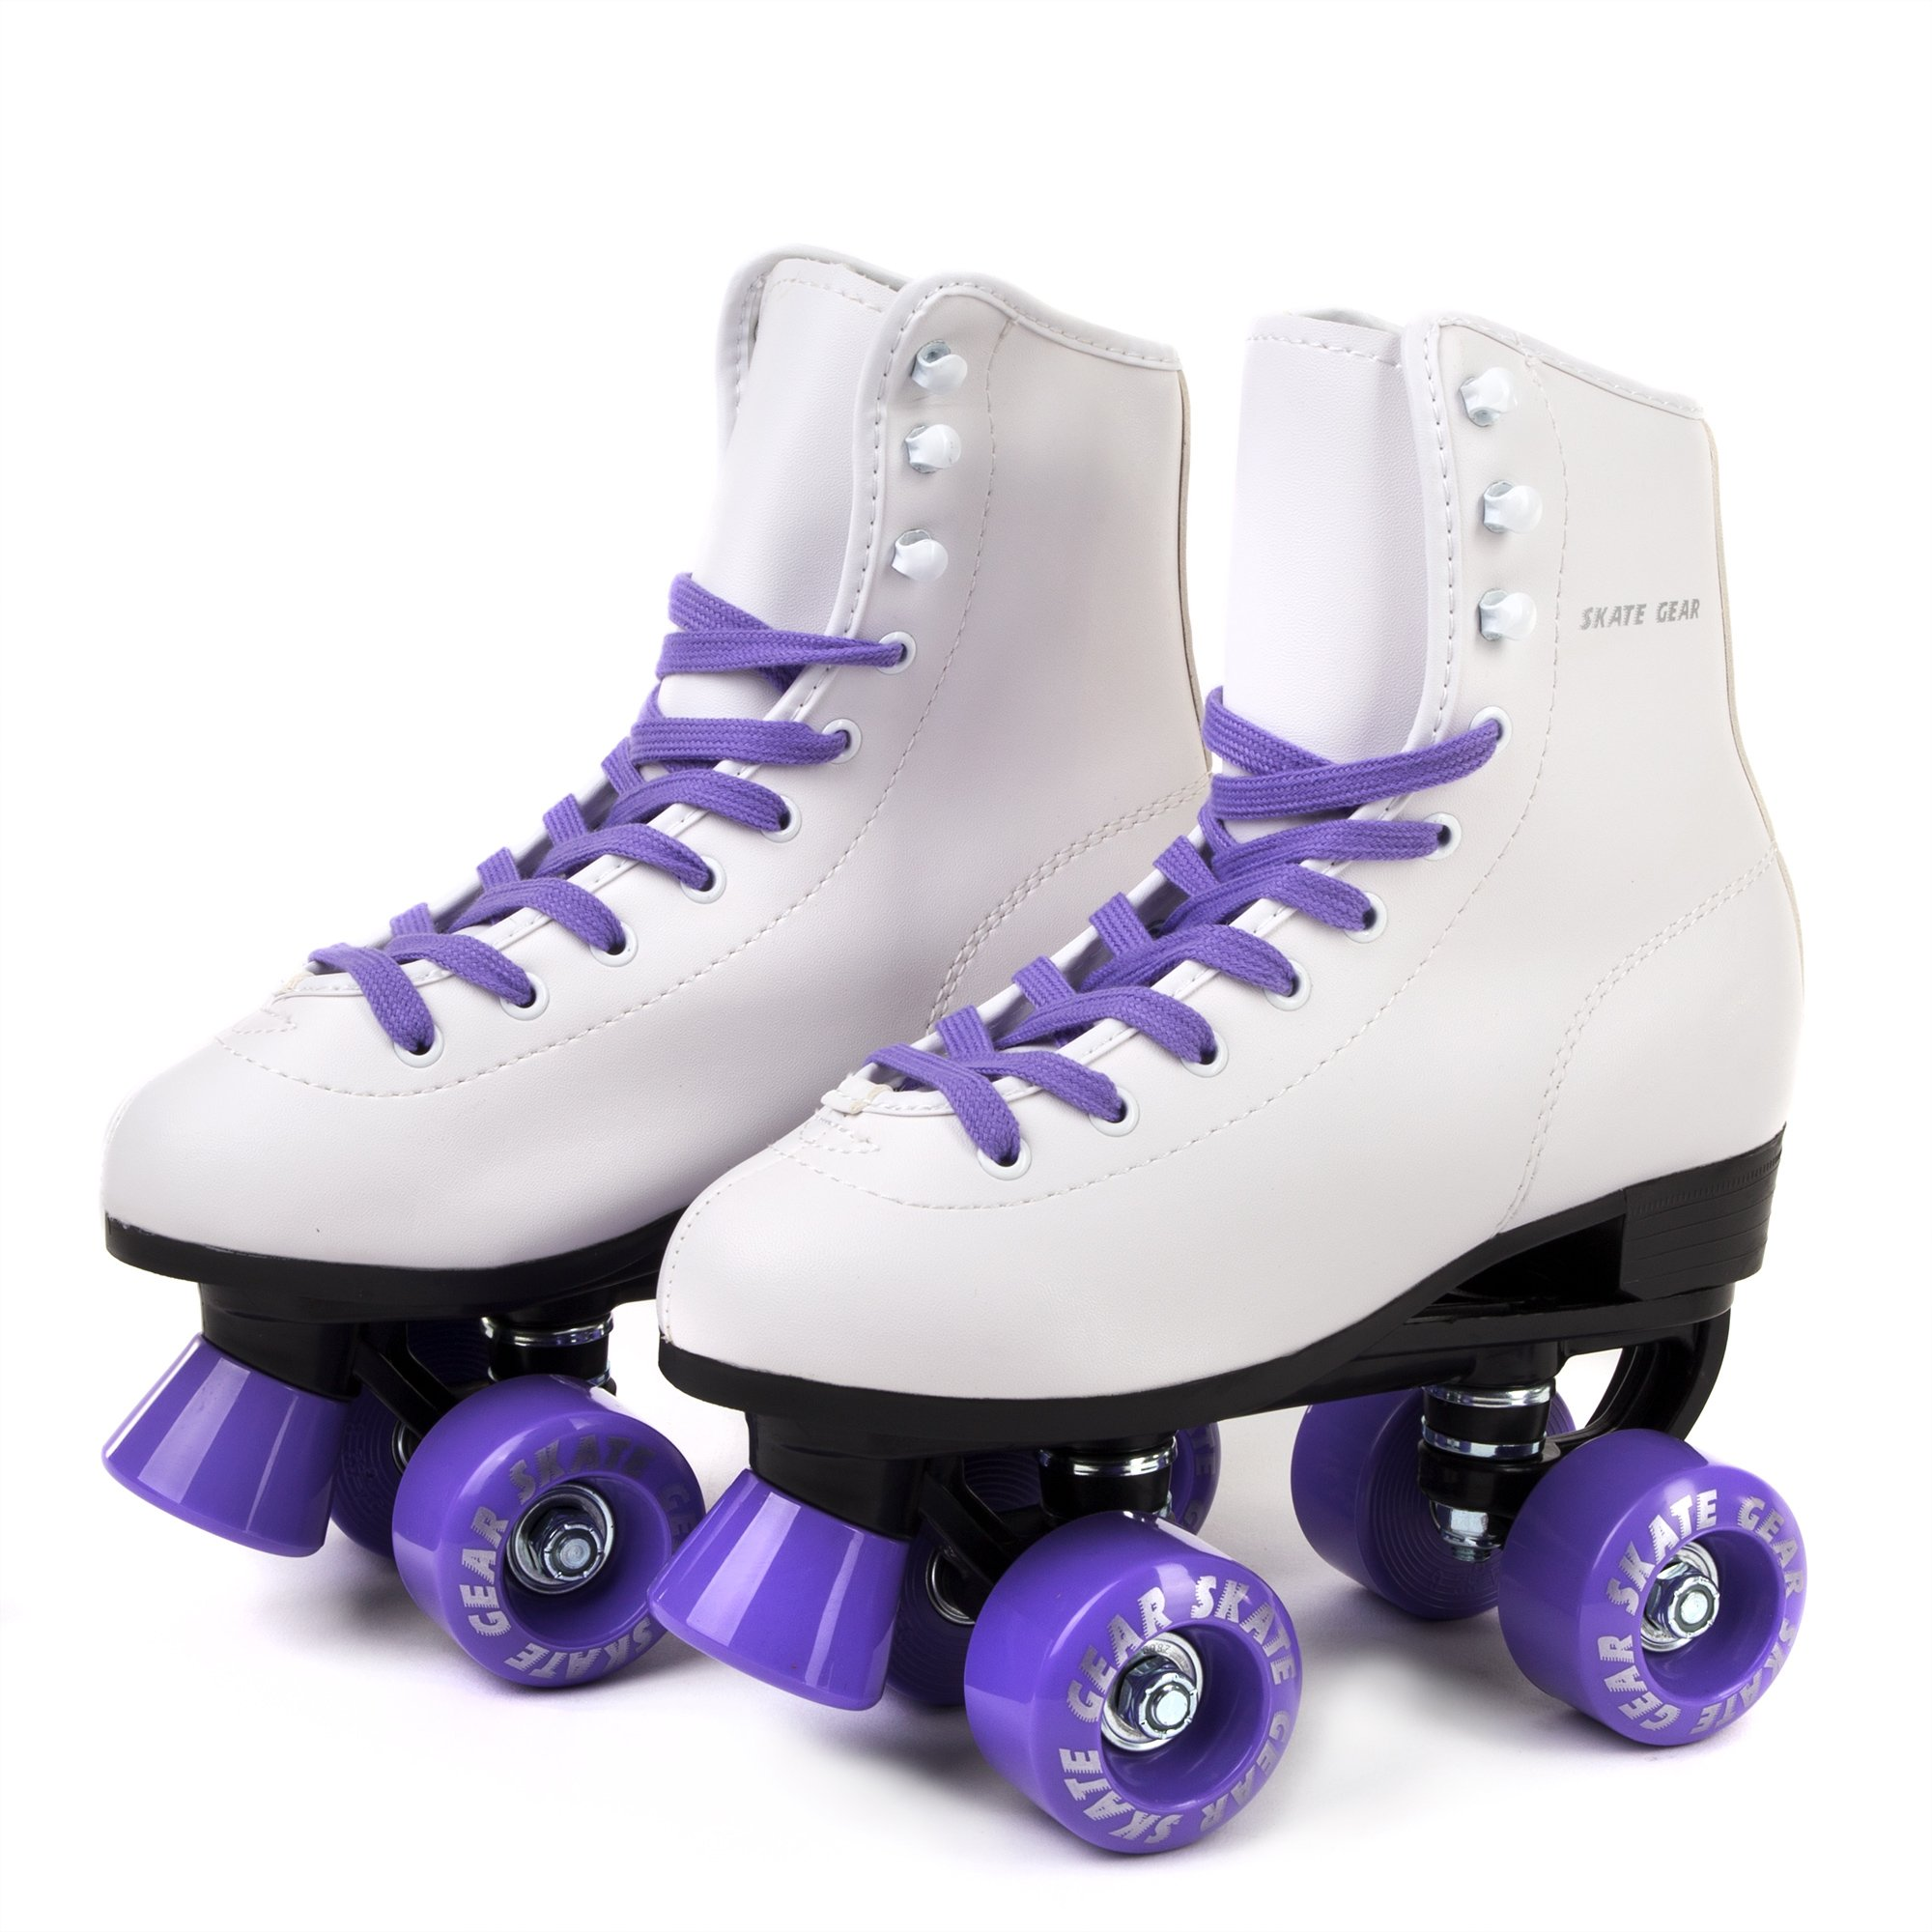 Skate Gear Soft Boot Roller Skate, Retro Fashion High Top Design in Faux Leather for Indoor & Outdoor (Classic Purple, Men's 8 / Women's 9)